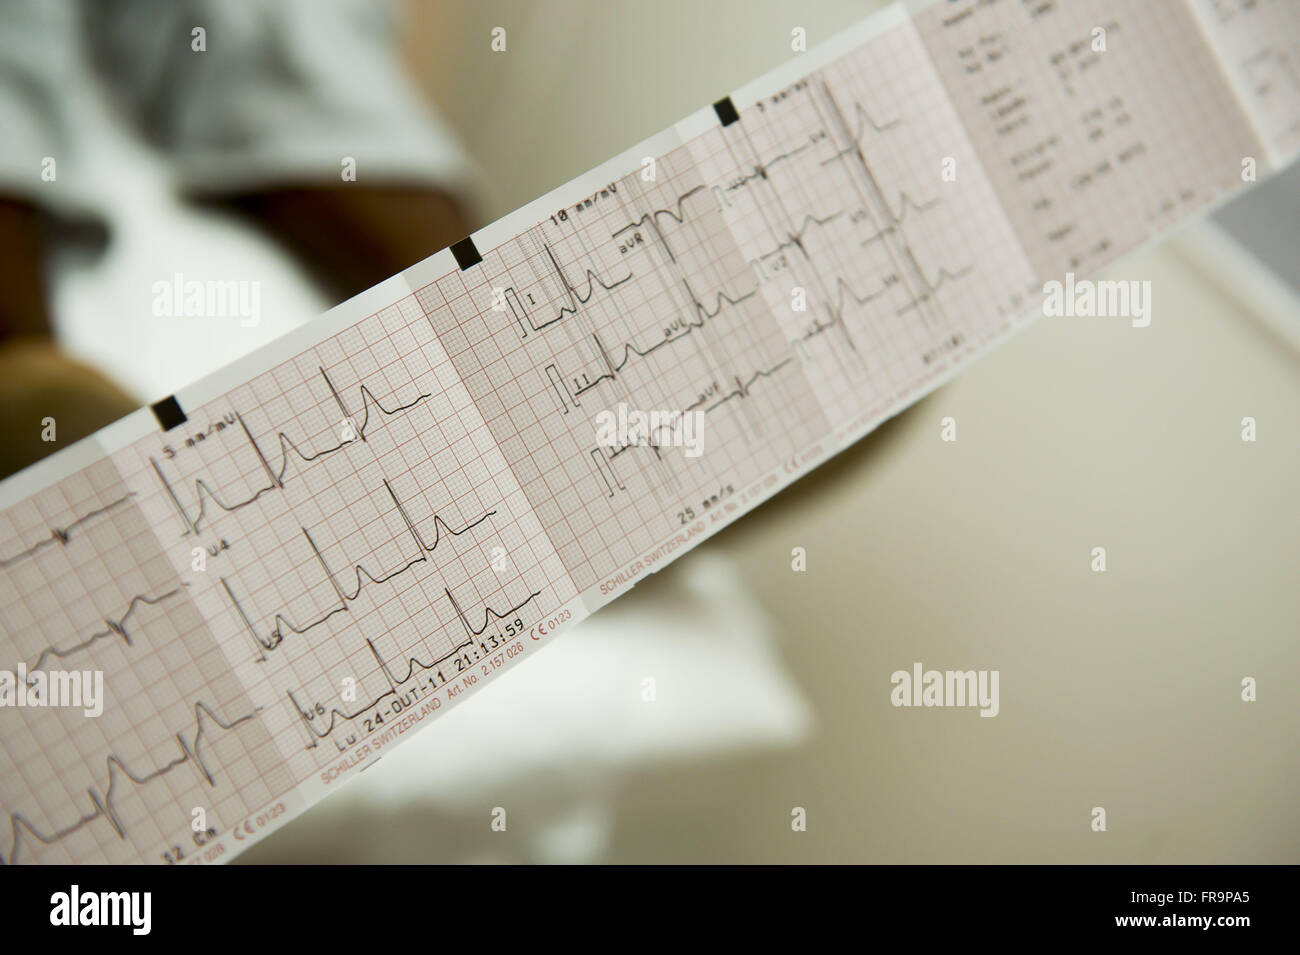 Electrocardiogram done by van needy population health in the Complexo do Alemao - Stock Image